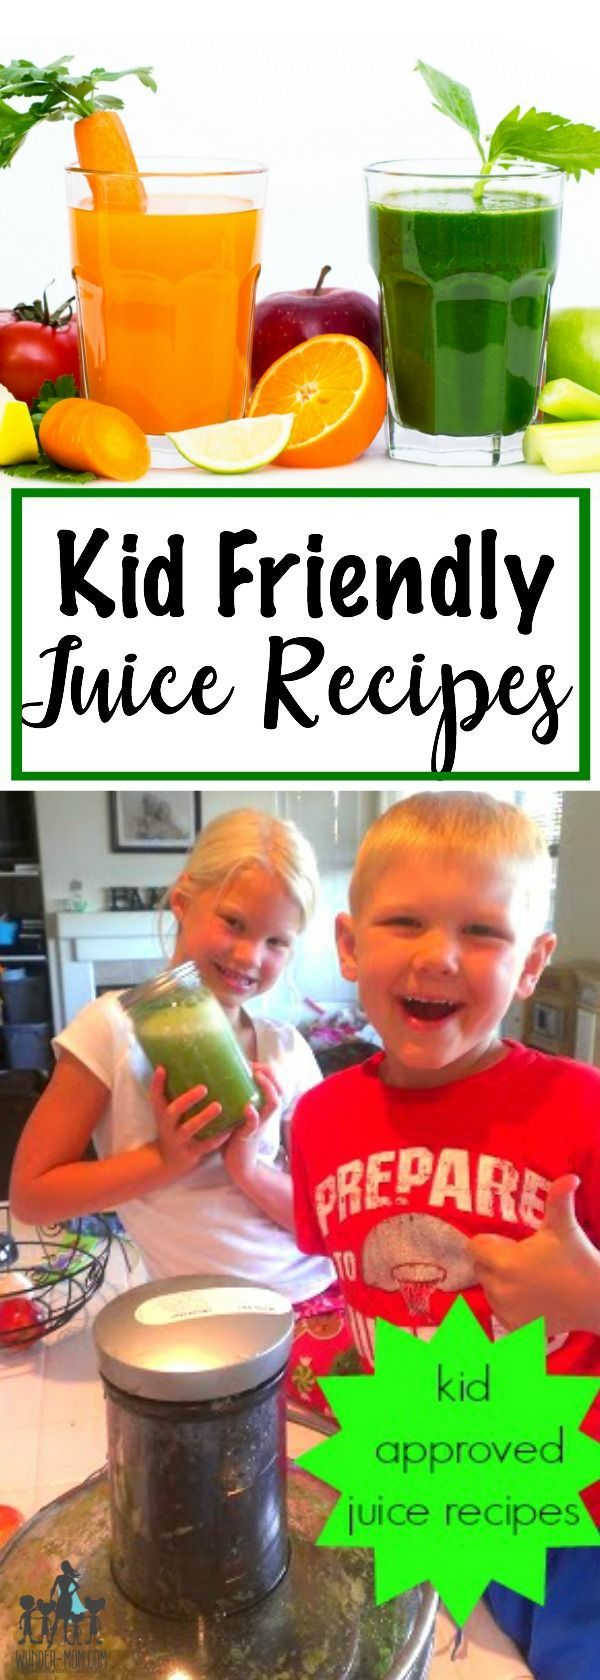 Kid Friendly Juice Recipes Green Juices Picky Eaters